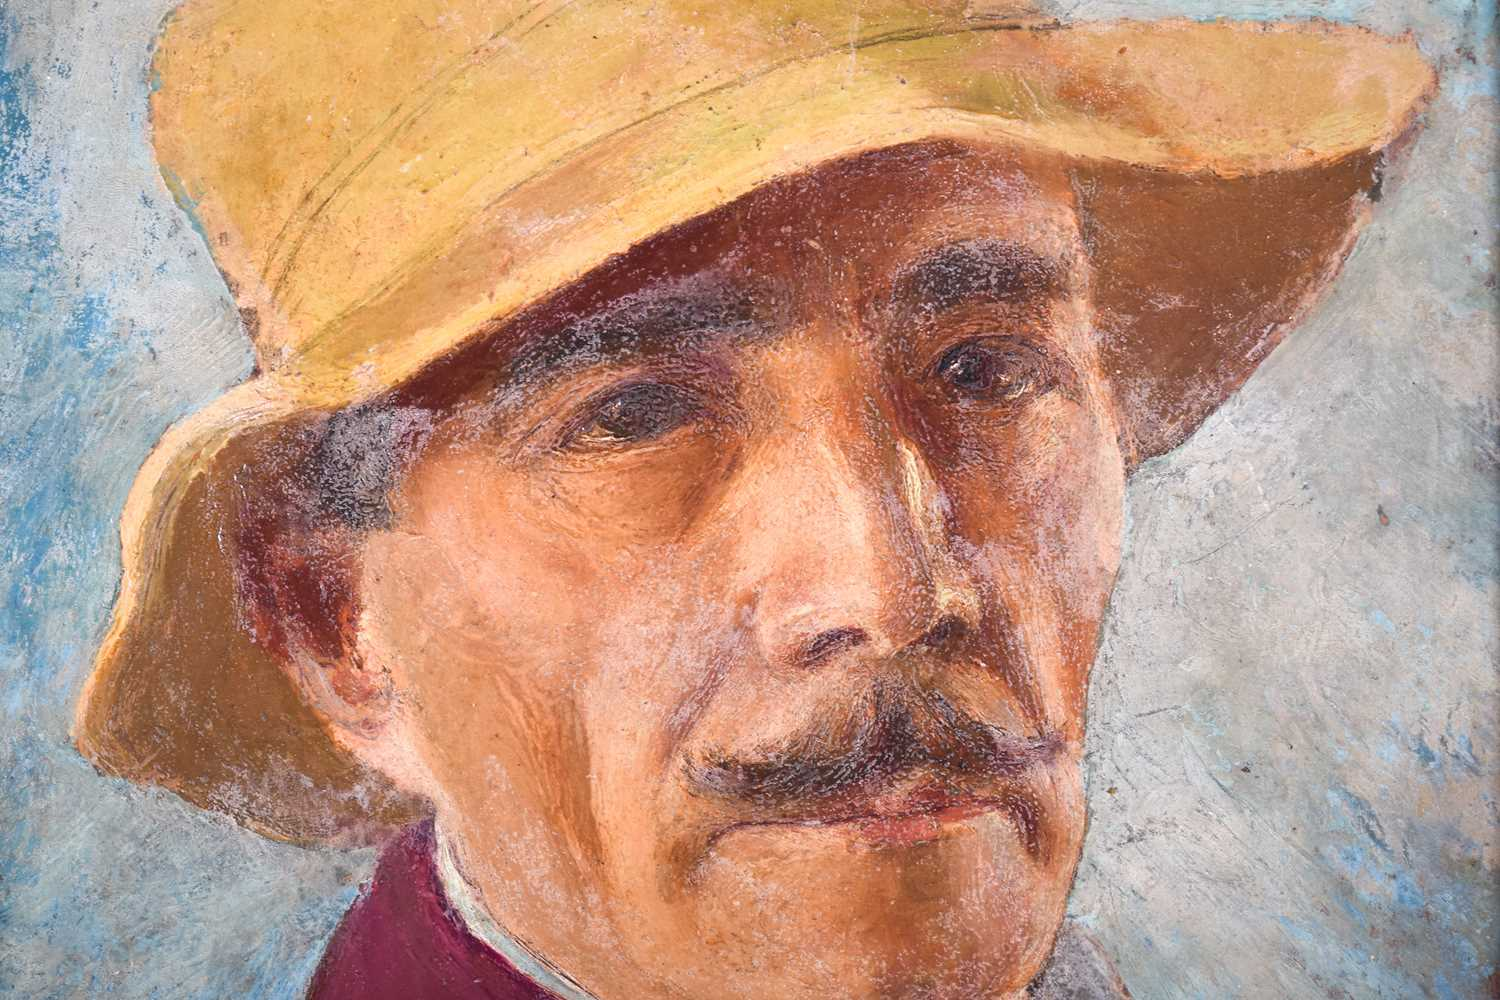 Lot 33 - Fortunino Matania (1881-1963) Italian, an unfinished portrait of a man in a yellow hat, possibly